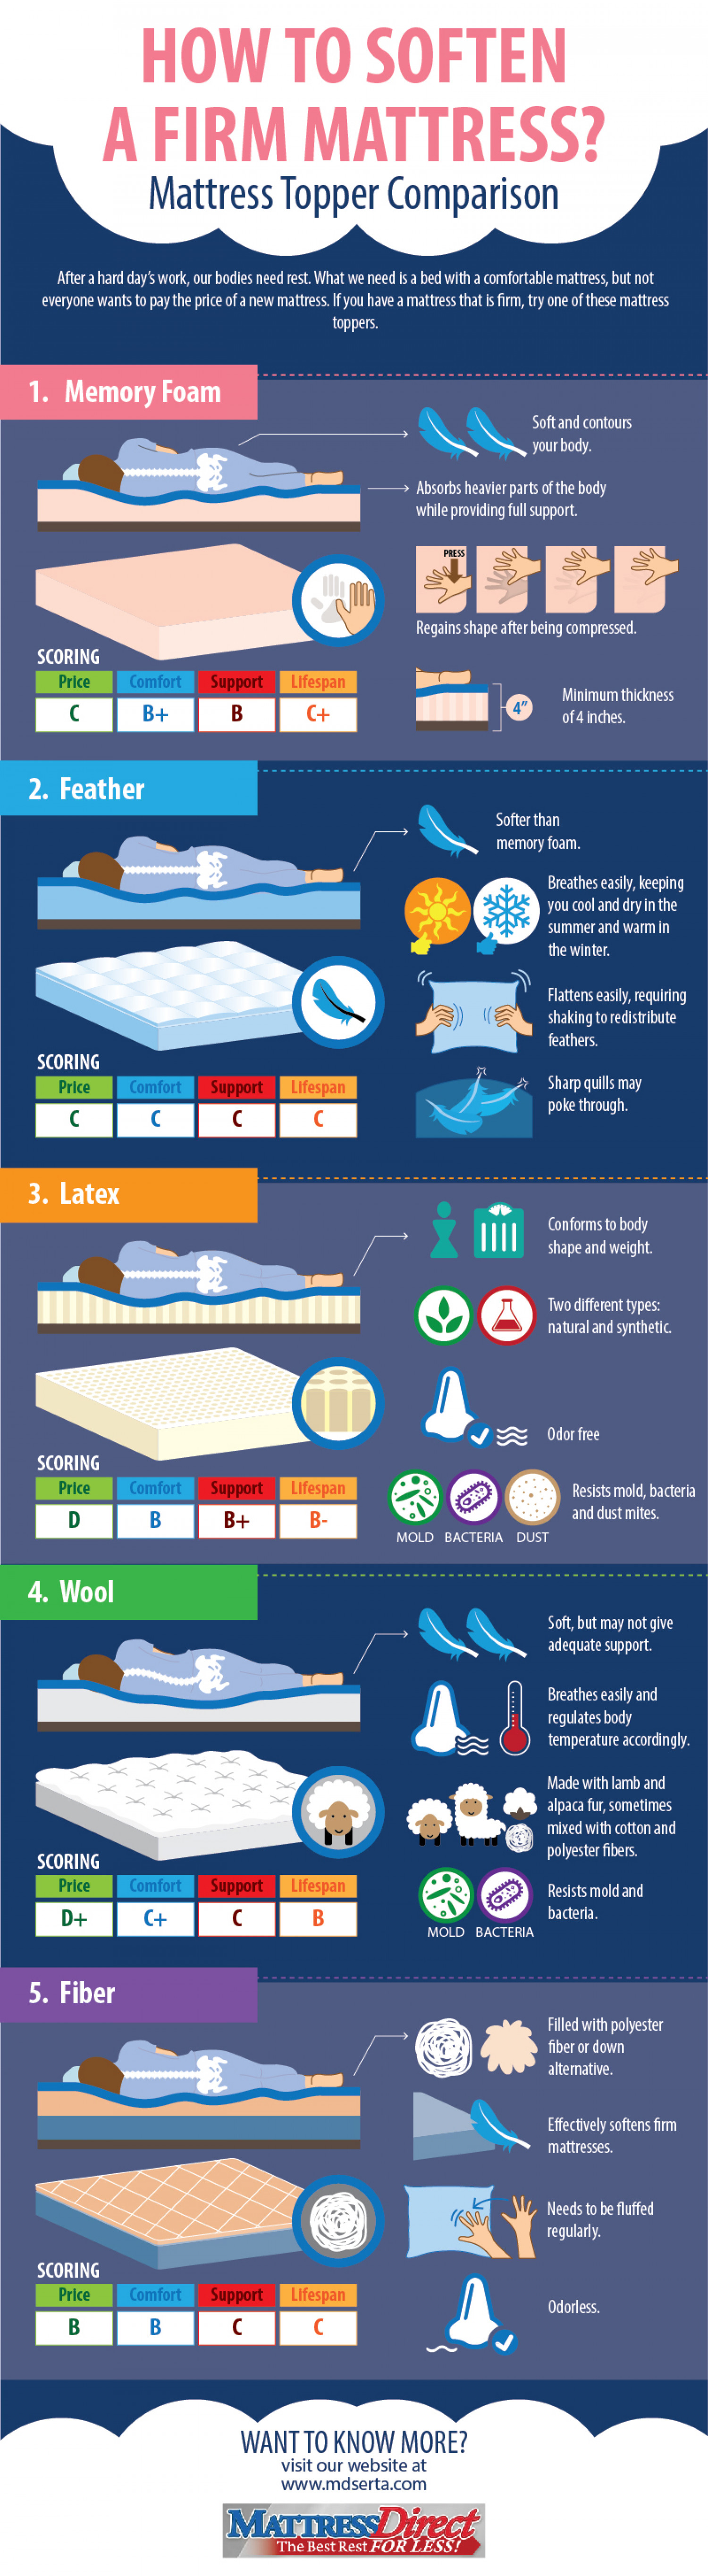 How To Soften A Firm Mattress? Infographic